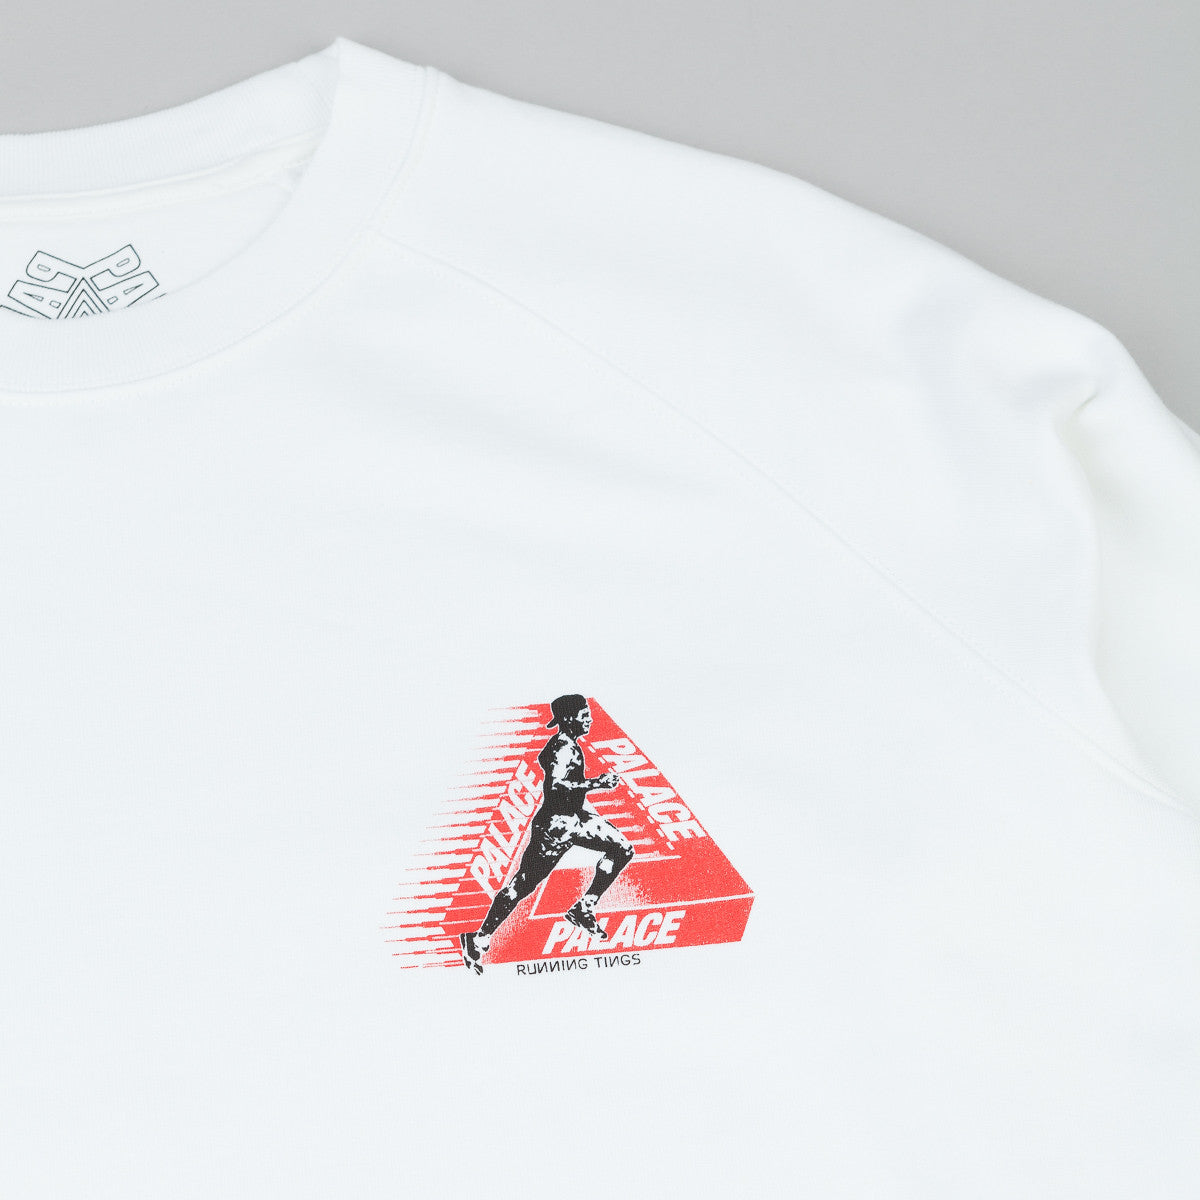 Palace Running Tings Crew Neck Sweatshirt - White